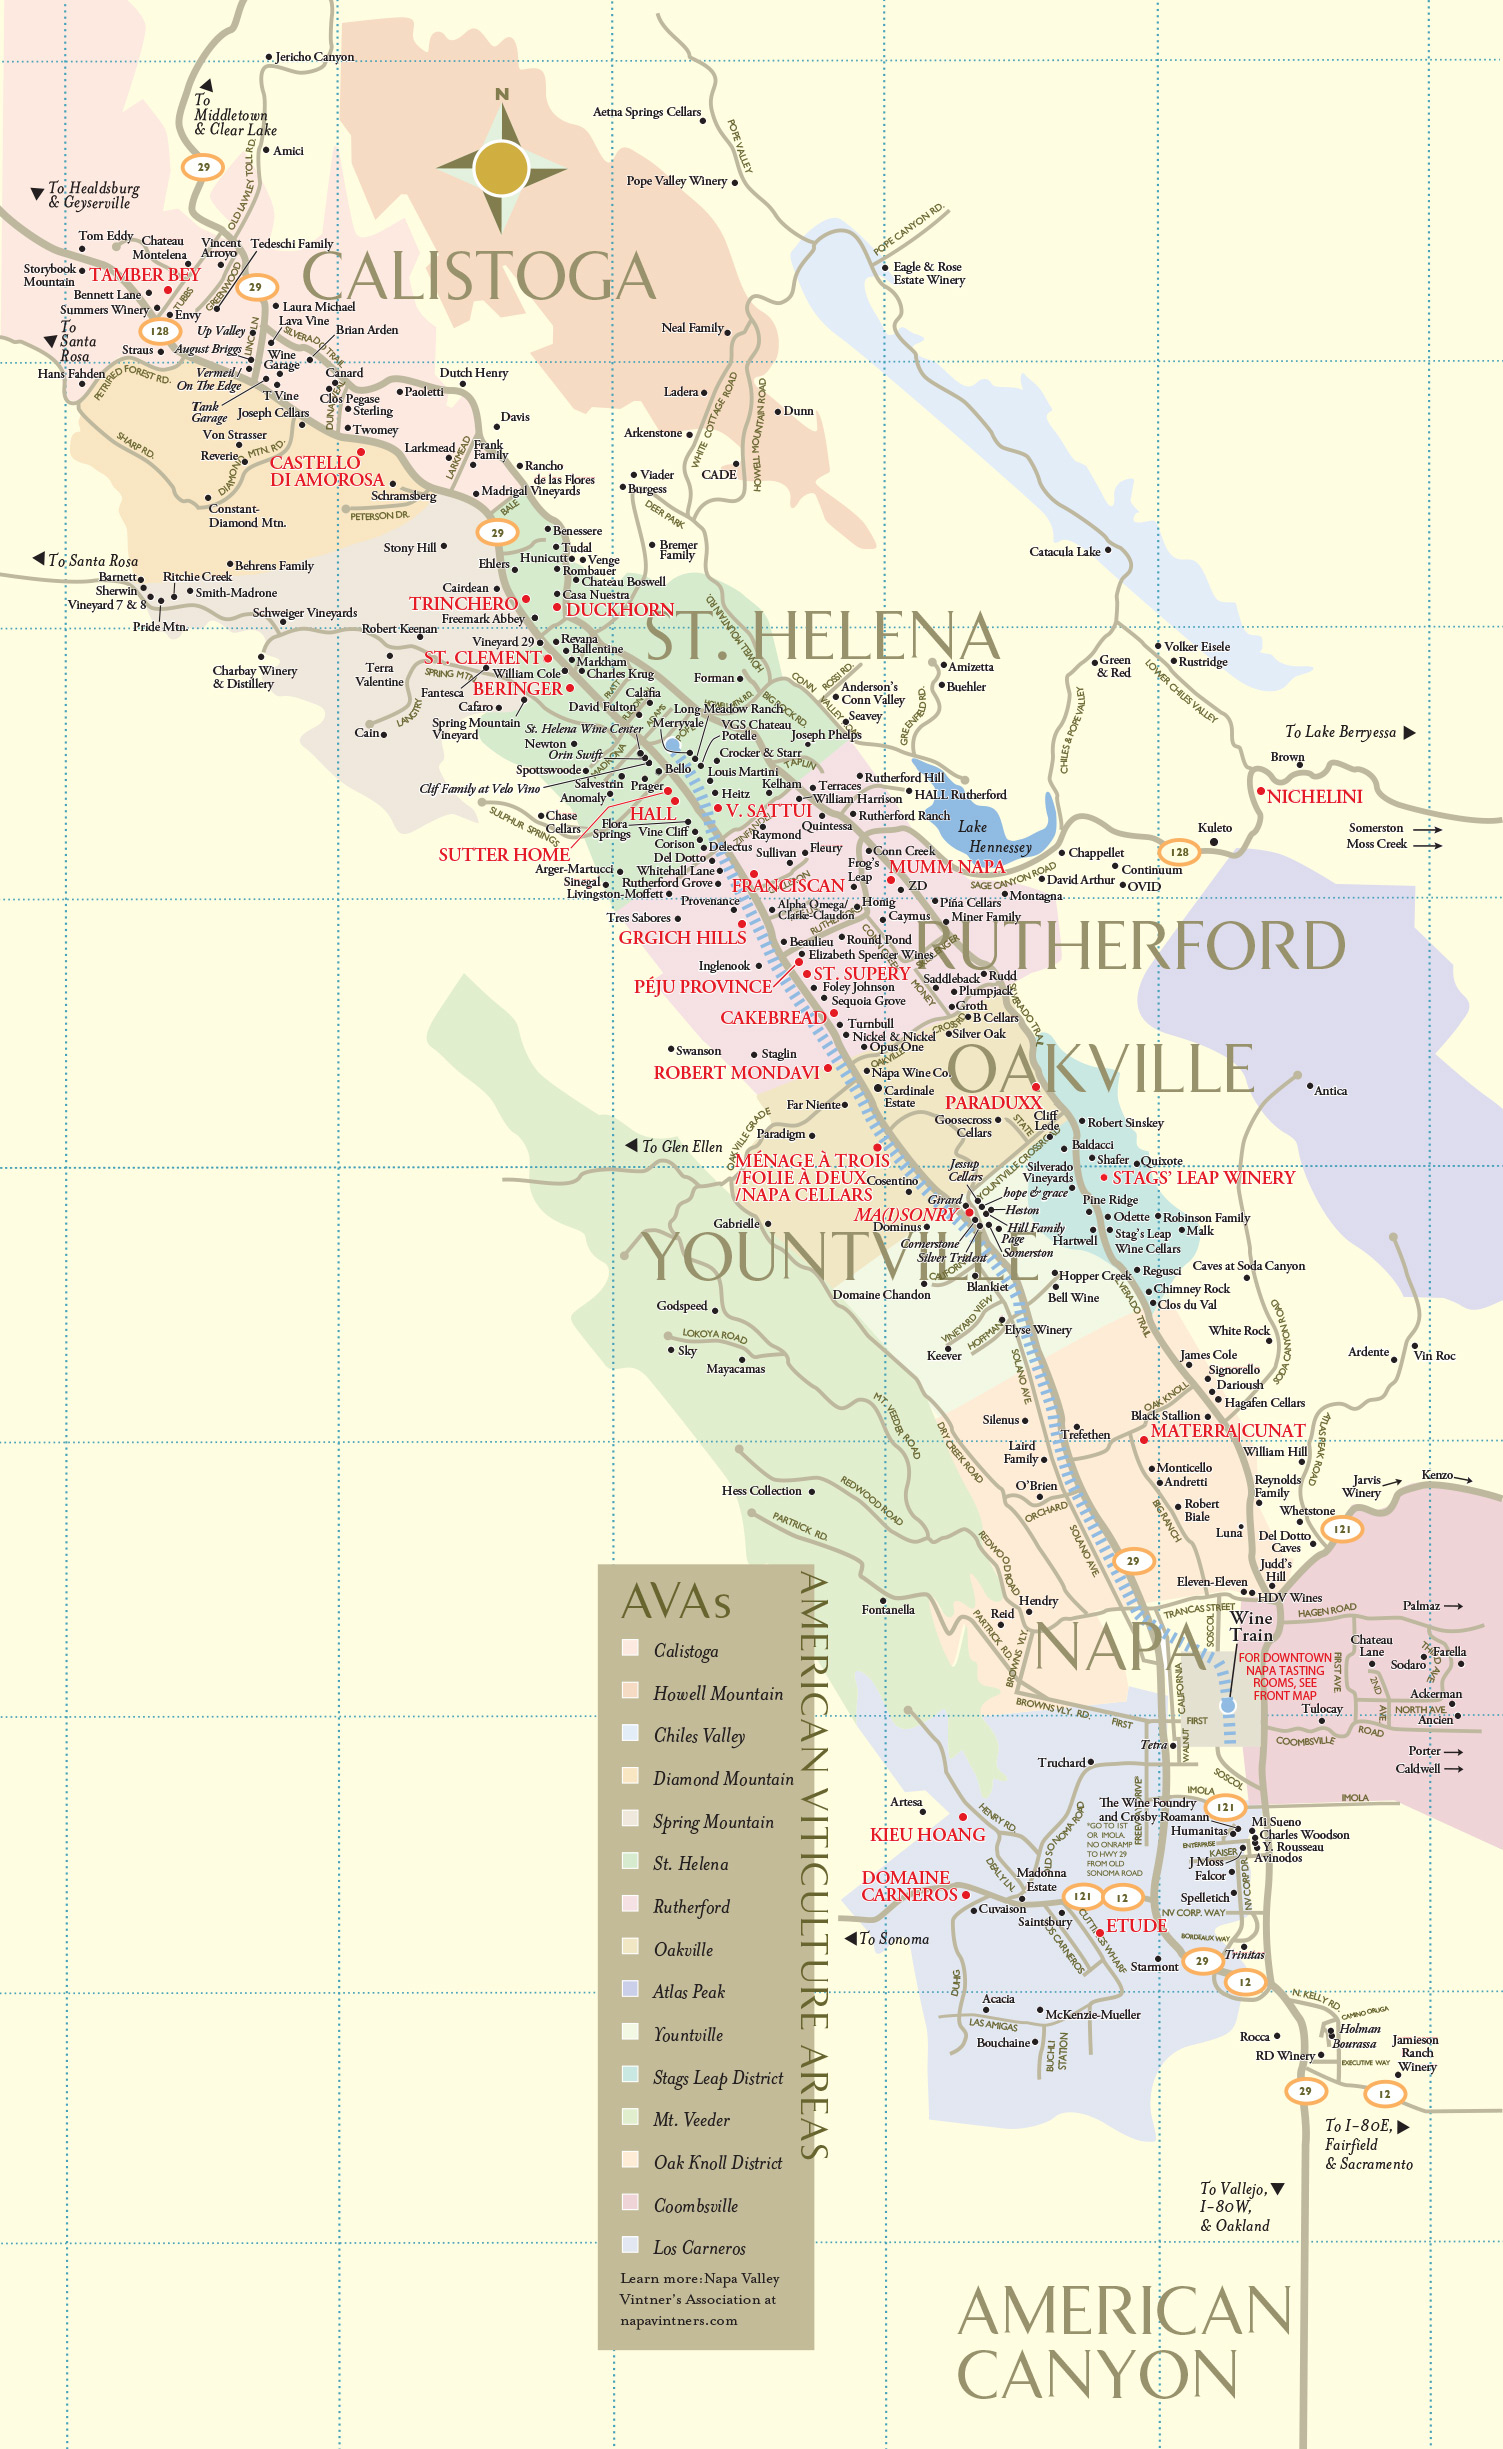 Napa Valley Wineries | Wine Tastings, Tours & Winery Map - Napa Valley California Map